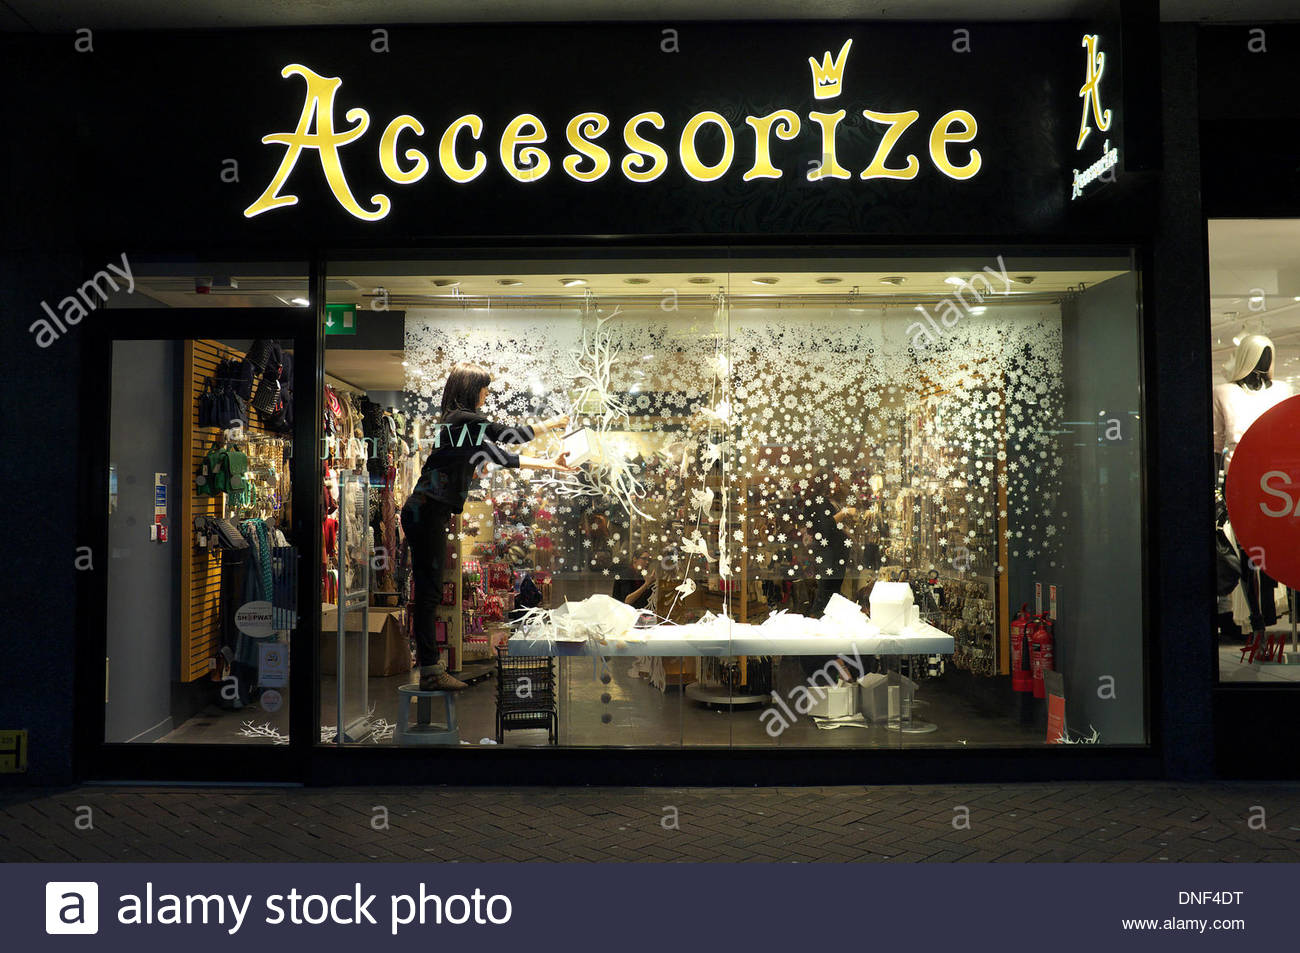 Ordinaire A Shop Worker Removes Christmas Decorations In The Display Window Of  Retailer Accessorize, A Fashion